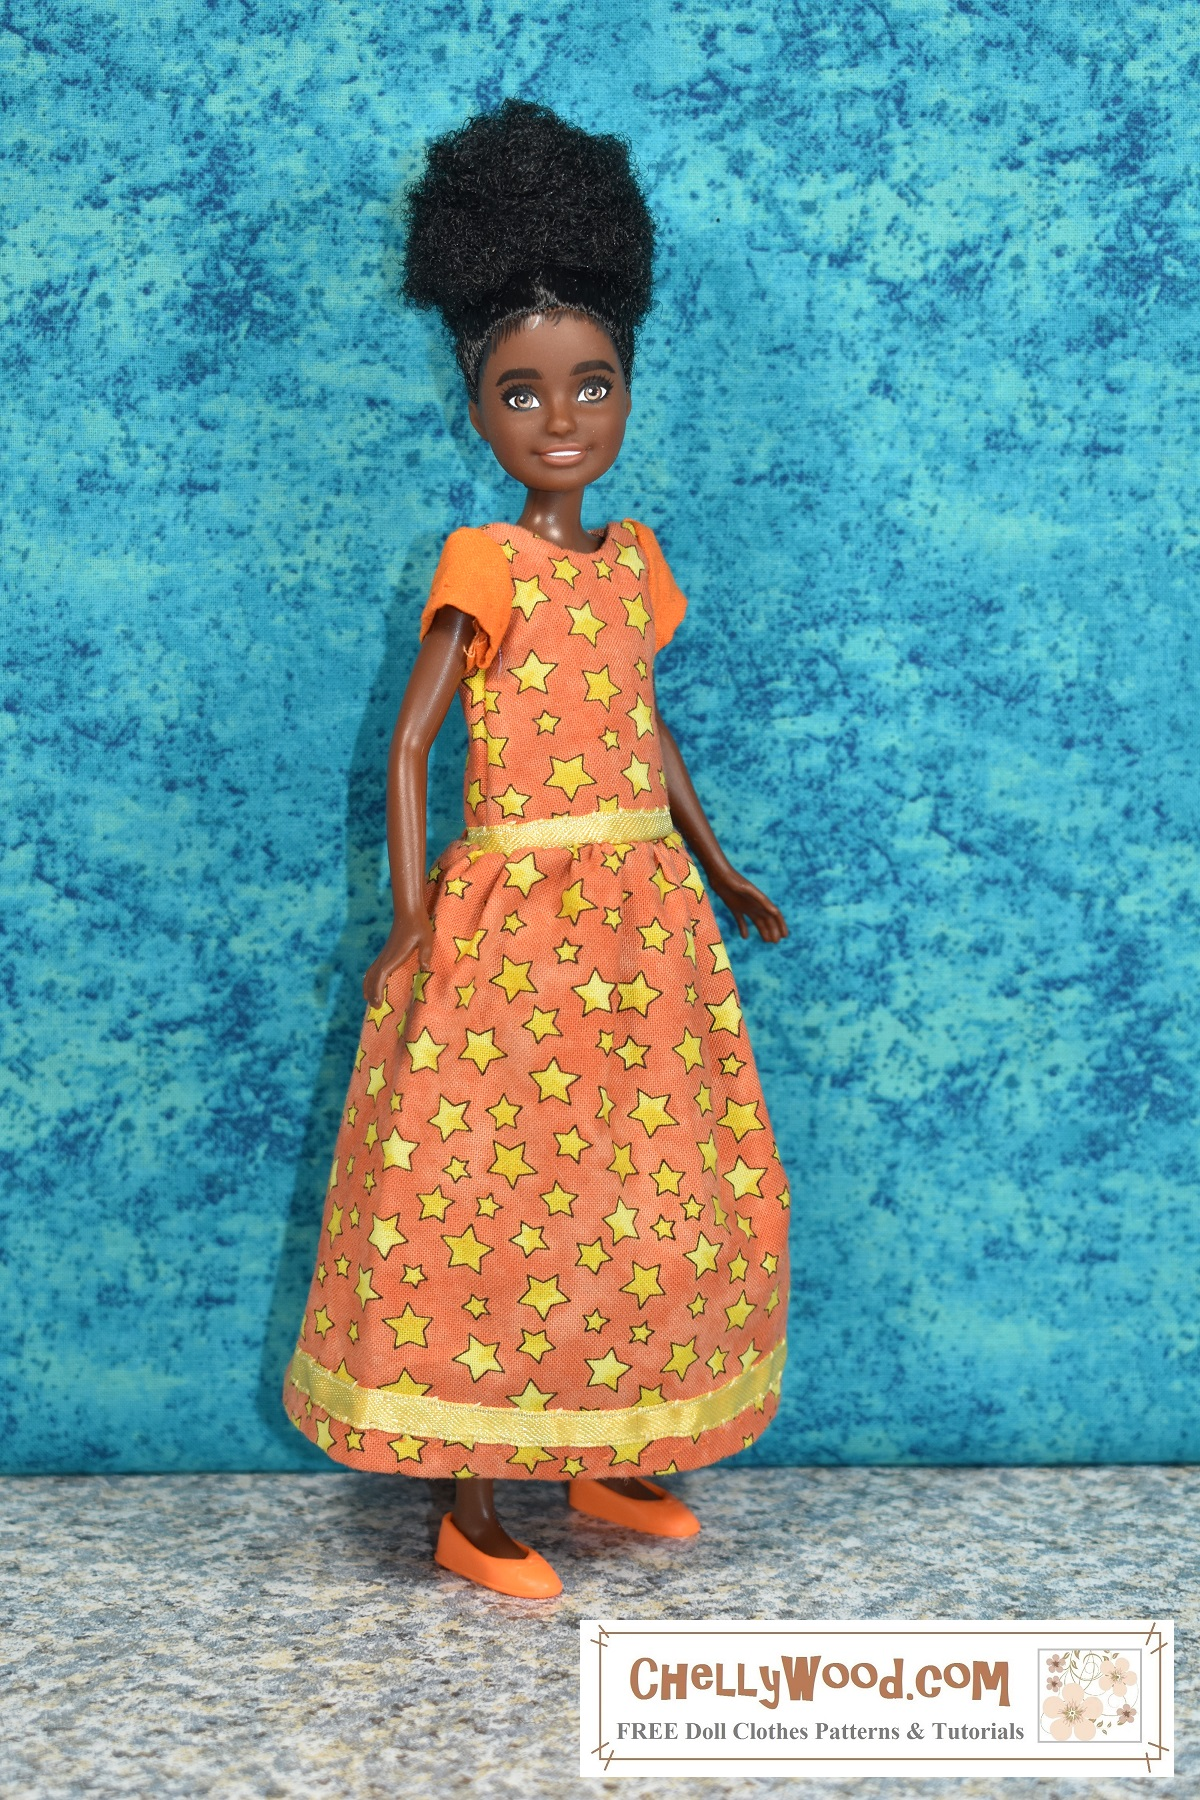 """The image shows a """"Team Stacie"""" friend-of-Stacie 9"""" doll modeling a handmade doll in a pretty bright orange color. The primary fabric is decorated with yellow stars of many sizes. The dress has a yellow ribbon trim along the bottom of the skirt and at the waist. The sleeves are made of solid orange fabric, unlike the rest of the dress, which is patterned with yellow stars on an orange background. The doll's bright orange flats match the color of her dress. The doll's plastic skin is milk-chocolate-colored, and her hair is naturally kinky and rich brown-to-black. The doll's face is framed in wispy black painted-or curls which match the color of her slightly raised eyebrows. She smiles at the camera. In the corner of the image is a logo which reads """"ChellyWood.com: free doll clothes patterns and tutorials."""" To make this dress, click on the link in the caption; it will take you to a page where you can find free printable PDF sewing patterns and tutorial videos to help you make this lovely harvest or Halloween party dress for your 8-inch or 9-inch (20 to 22 cm) dolls."""